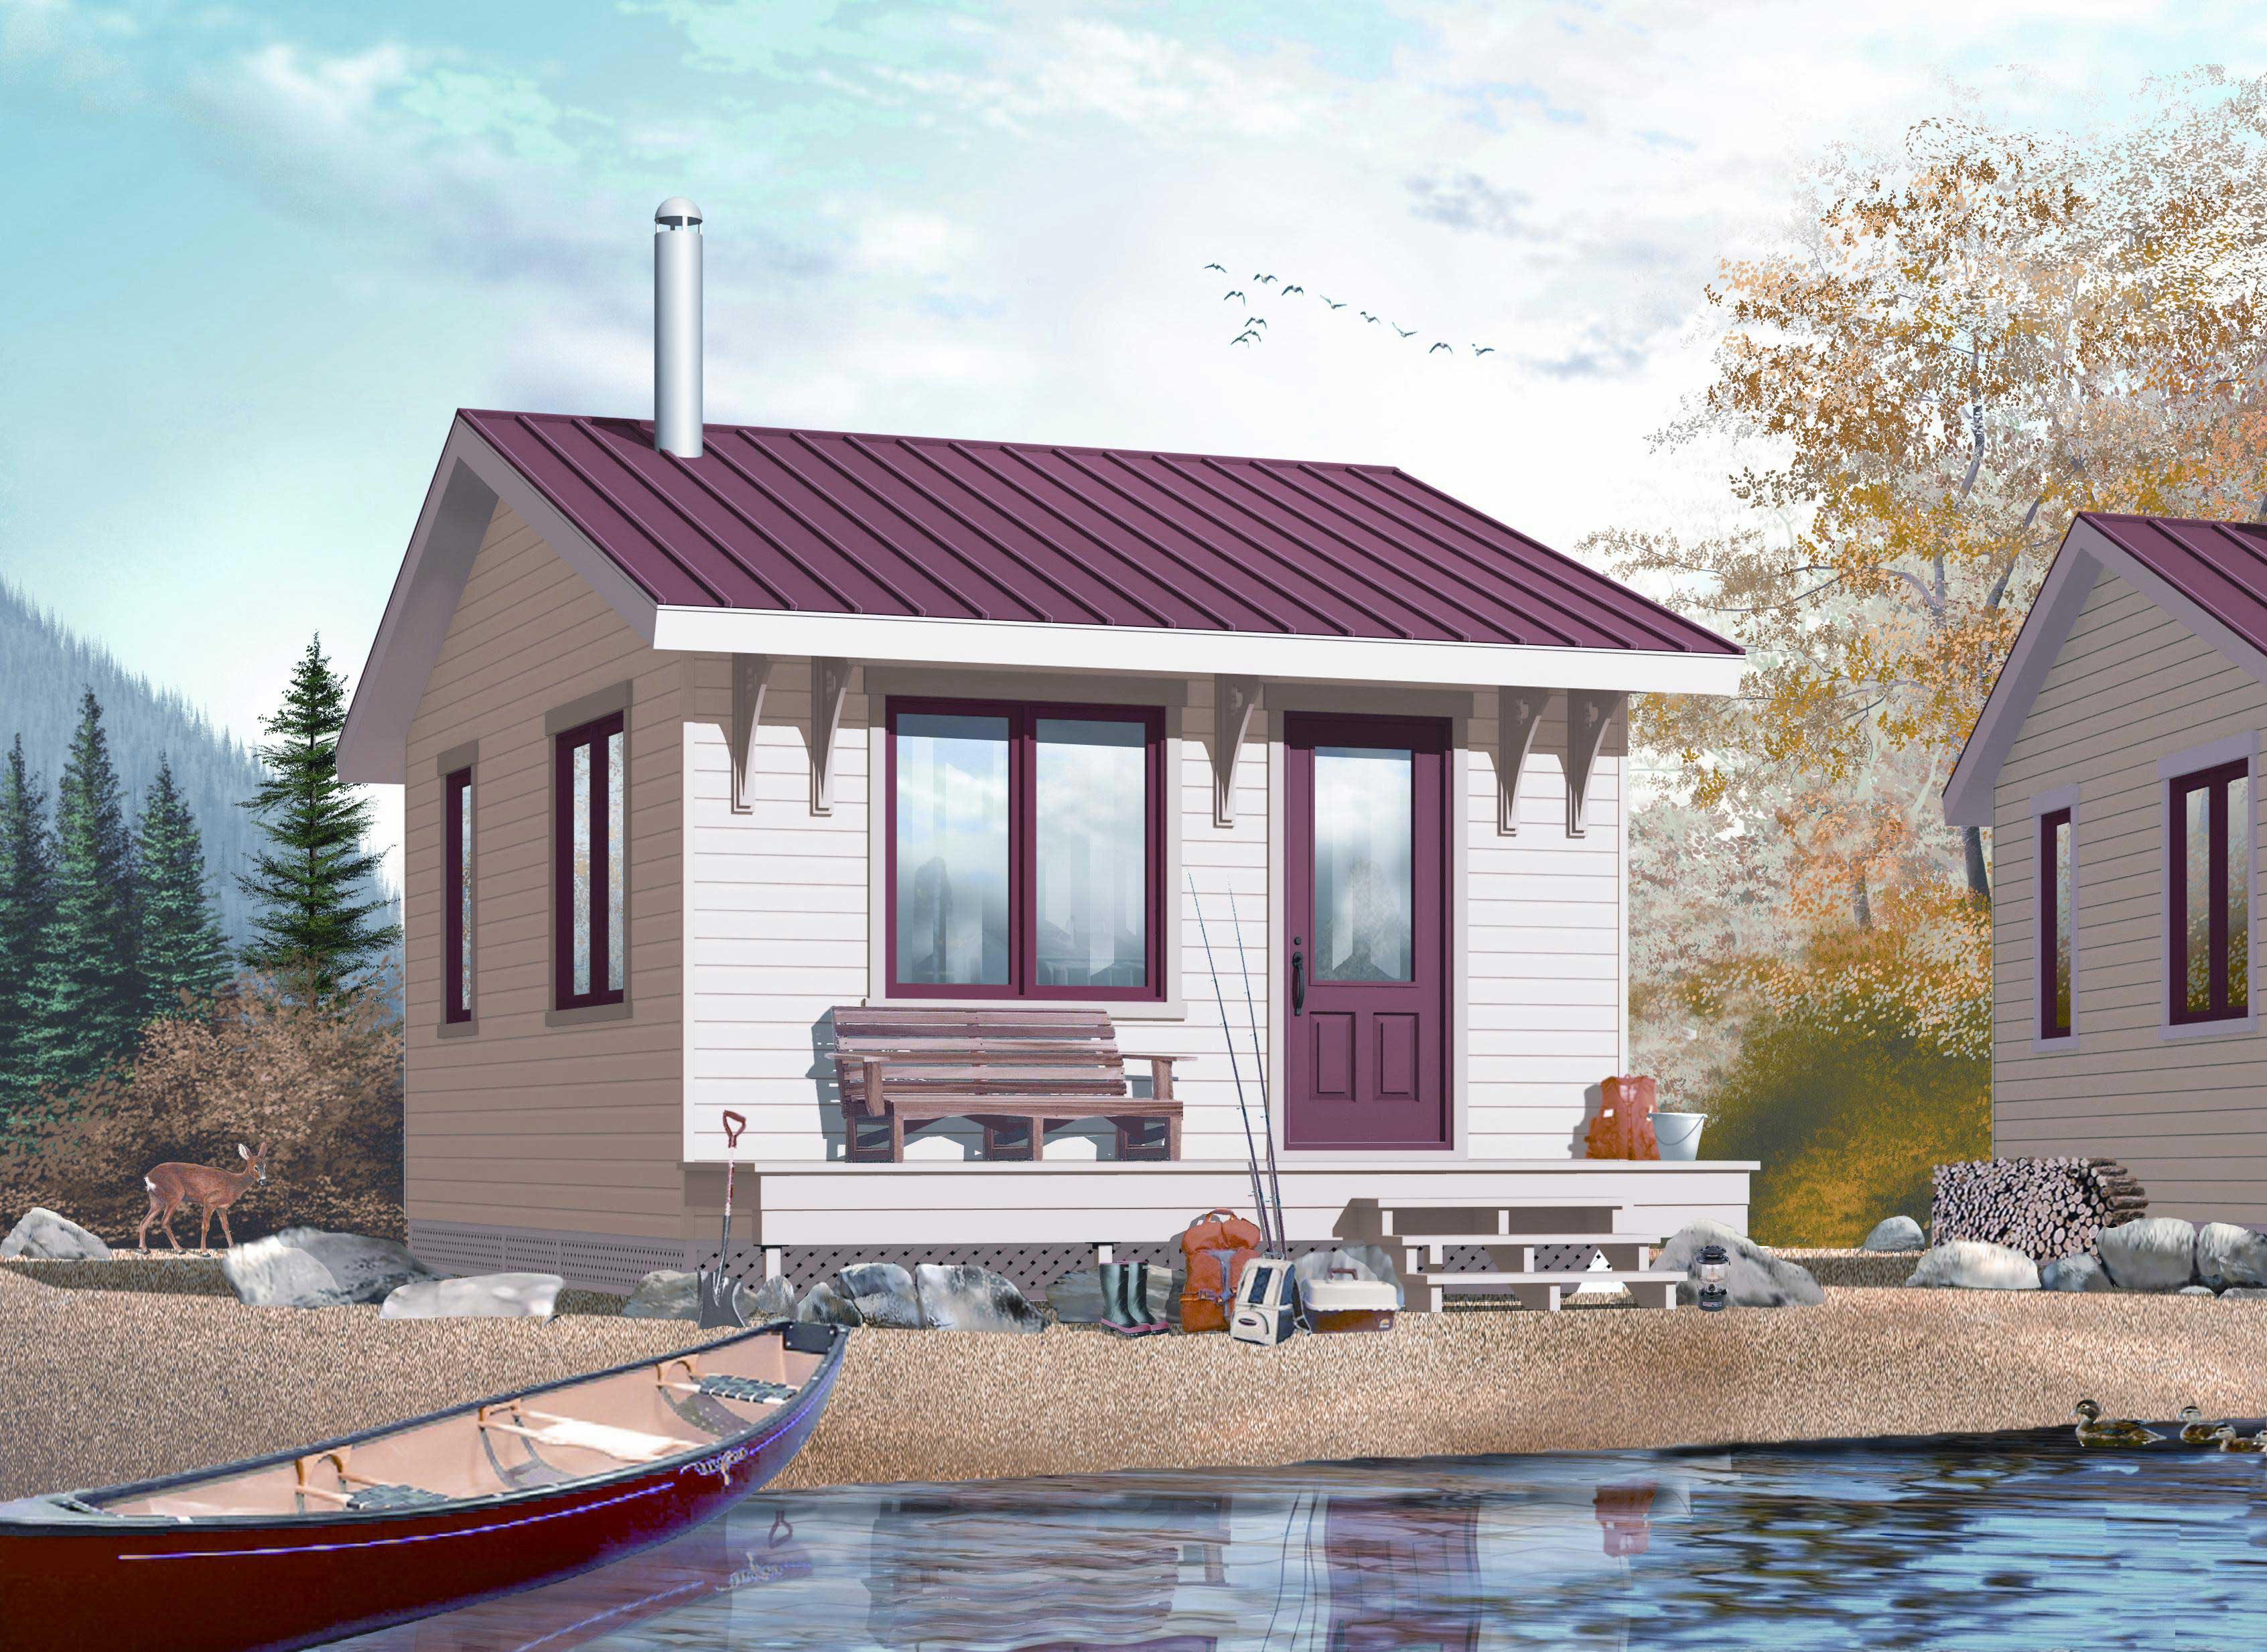 Tiny Home Designs: Vacation Home Design DD-1901